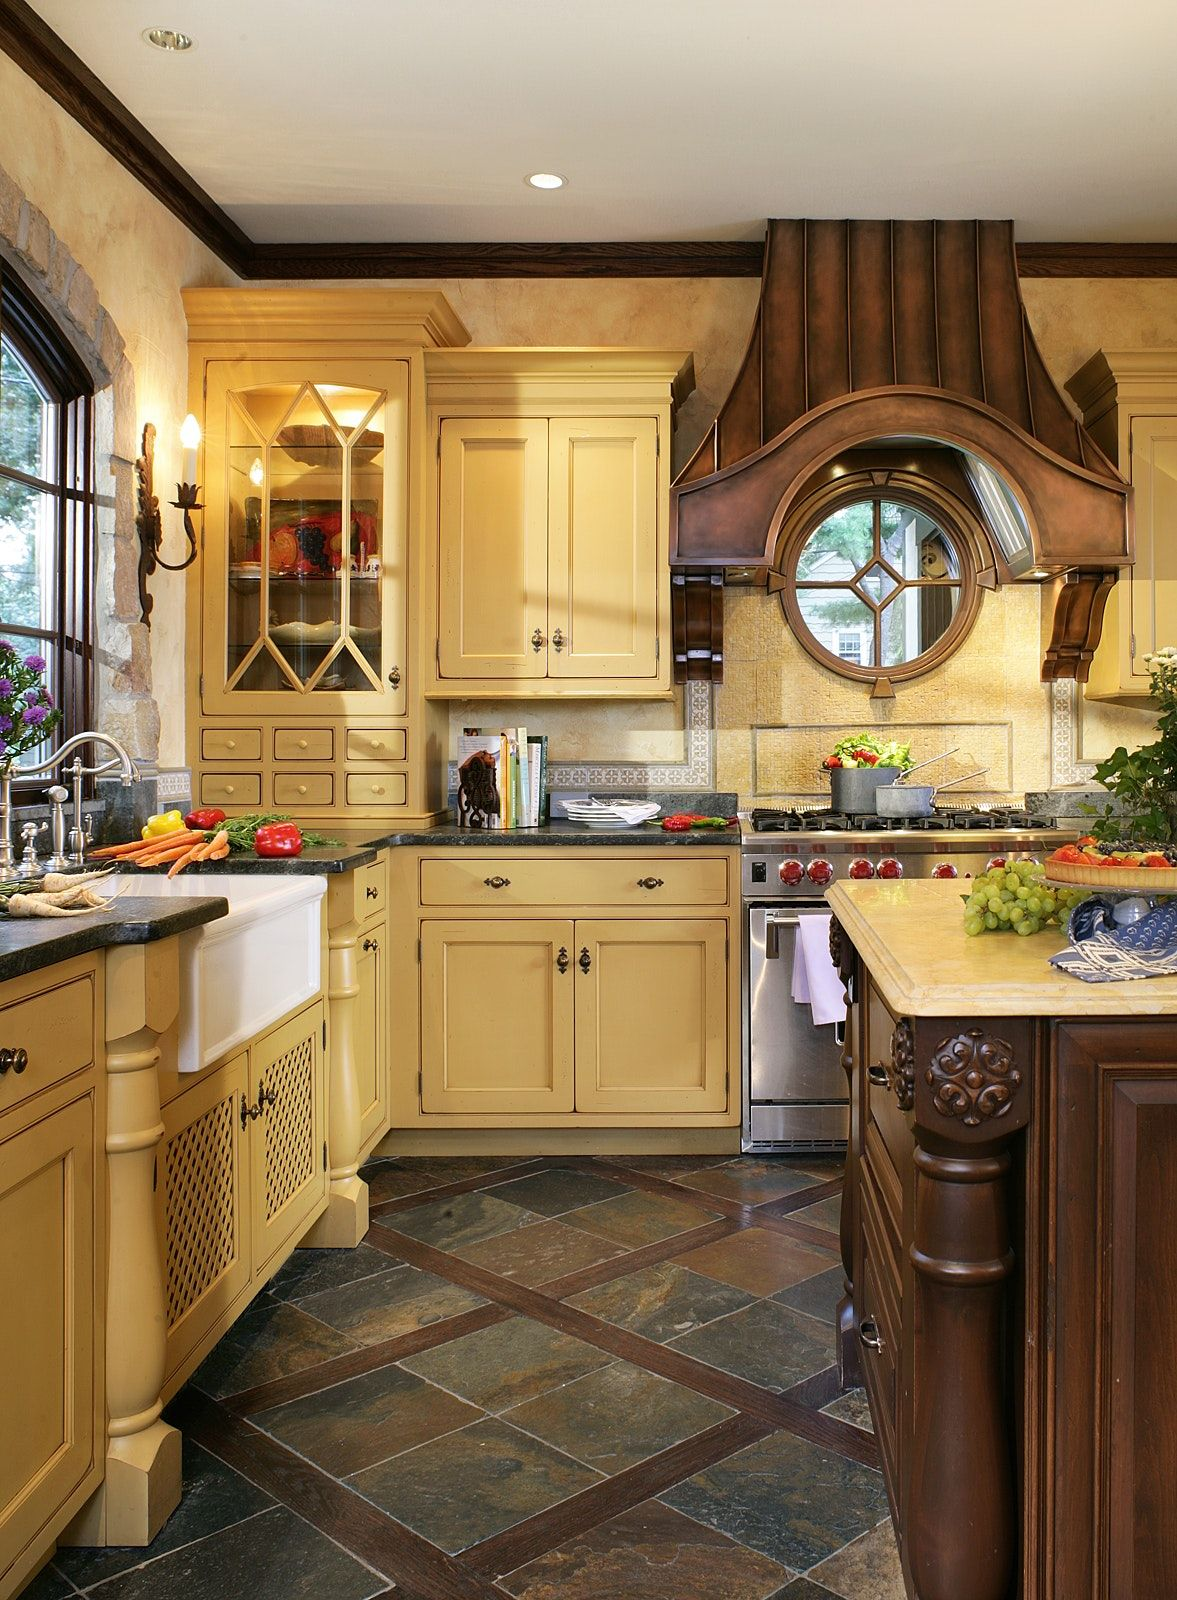 Custom Country Kitchen timeless french country kitchen with old world ambiance, featuring